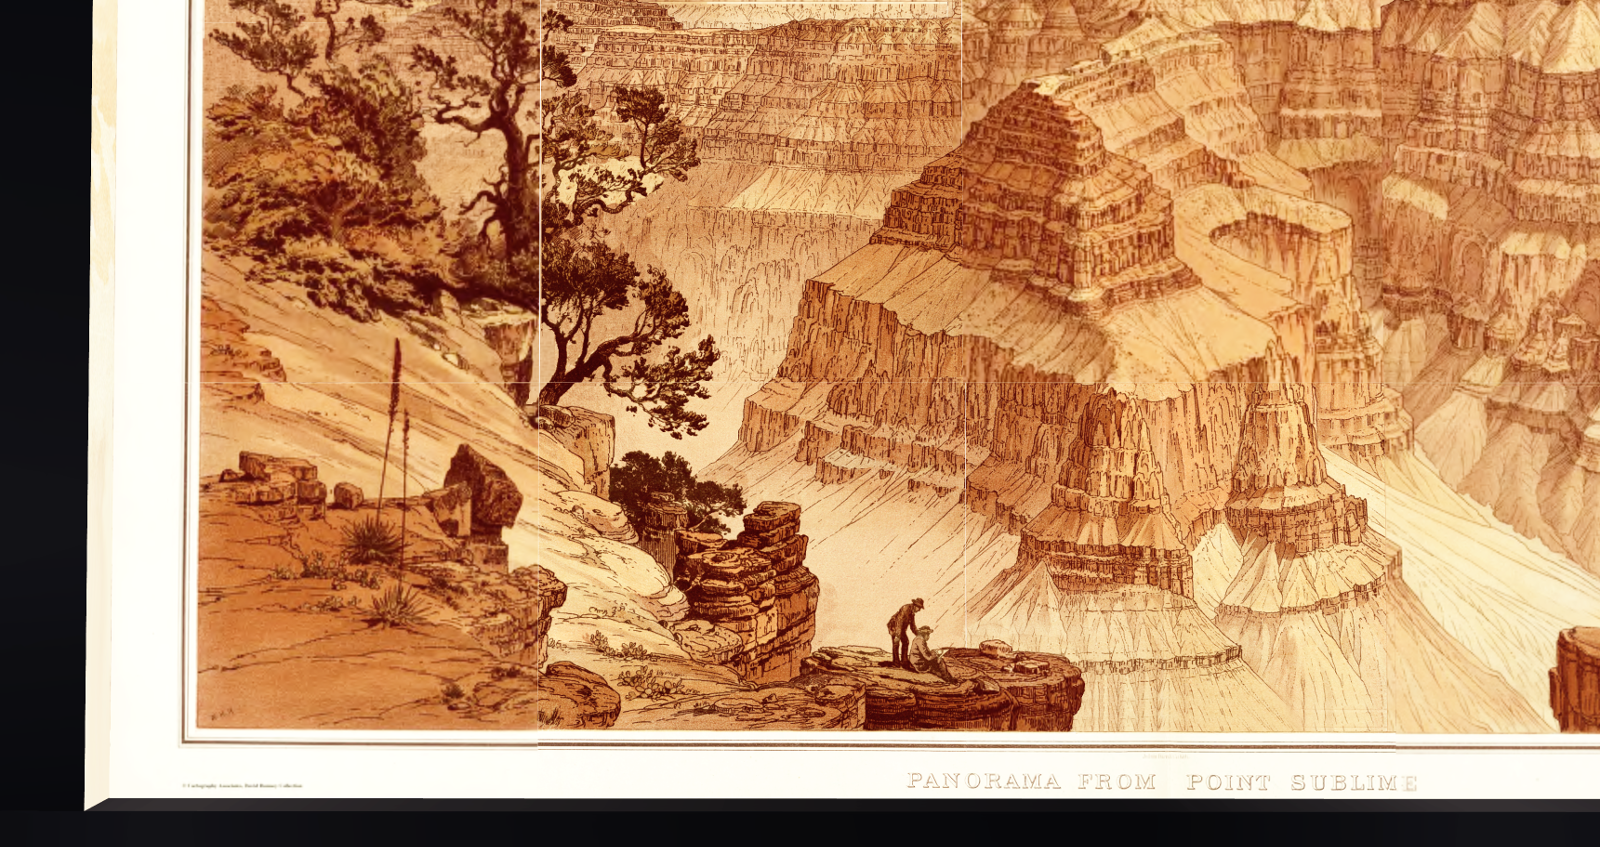 Portrait of the artist: William Henry Holmes seems to have depicted himself on the Grand Canyon perspective drawing